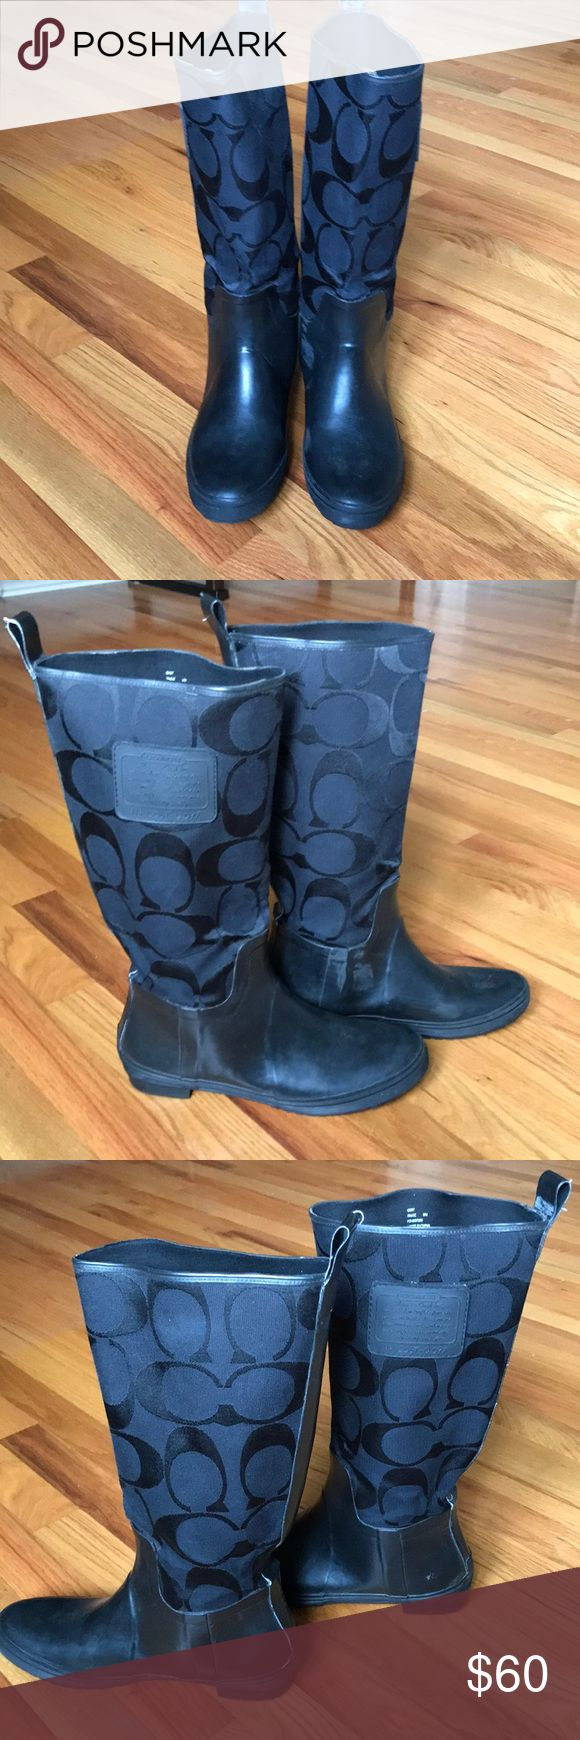 COACH RAIN BOOTS Beautiful Coach rain boots! In very good condition. Bought in the New York City Flagship store🖤 Shaft circumference is 15.5. Coach Shoes Winter & Rain Boots